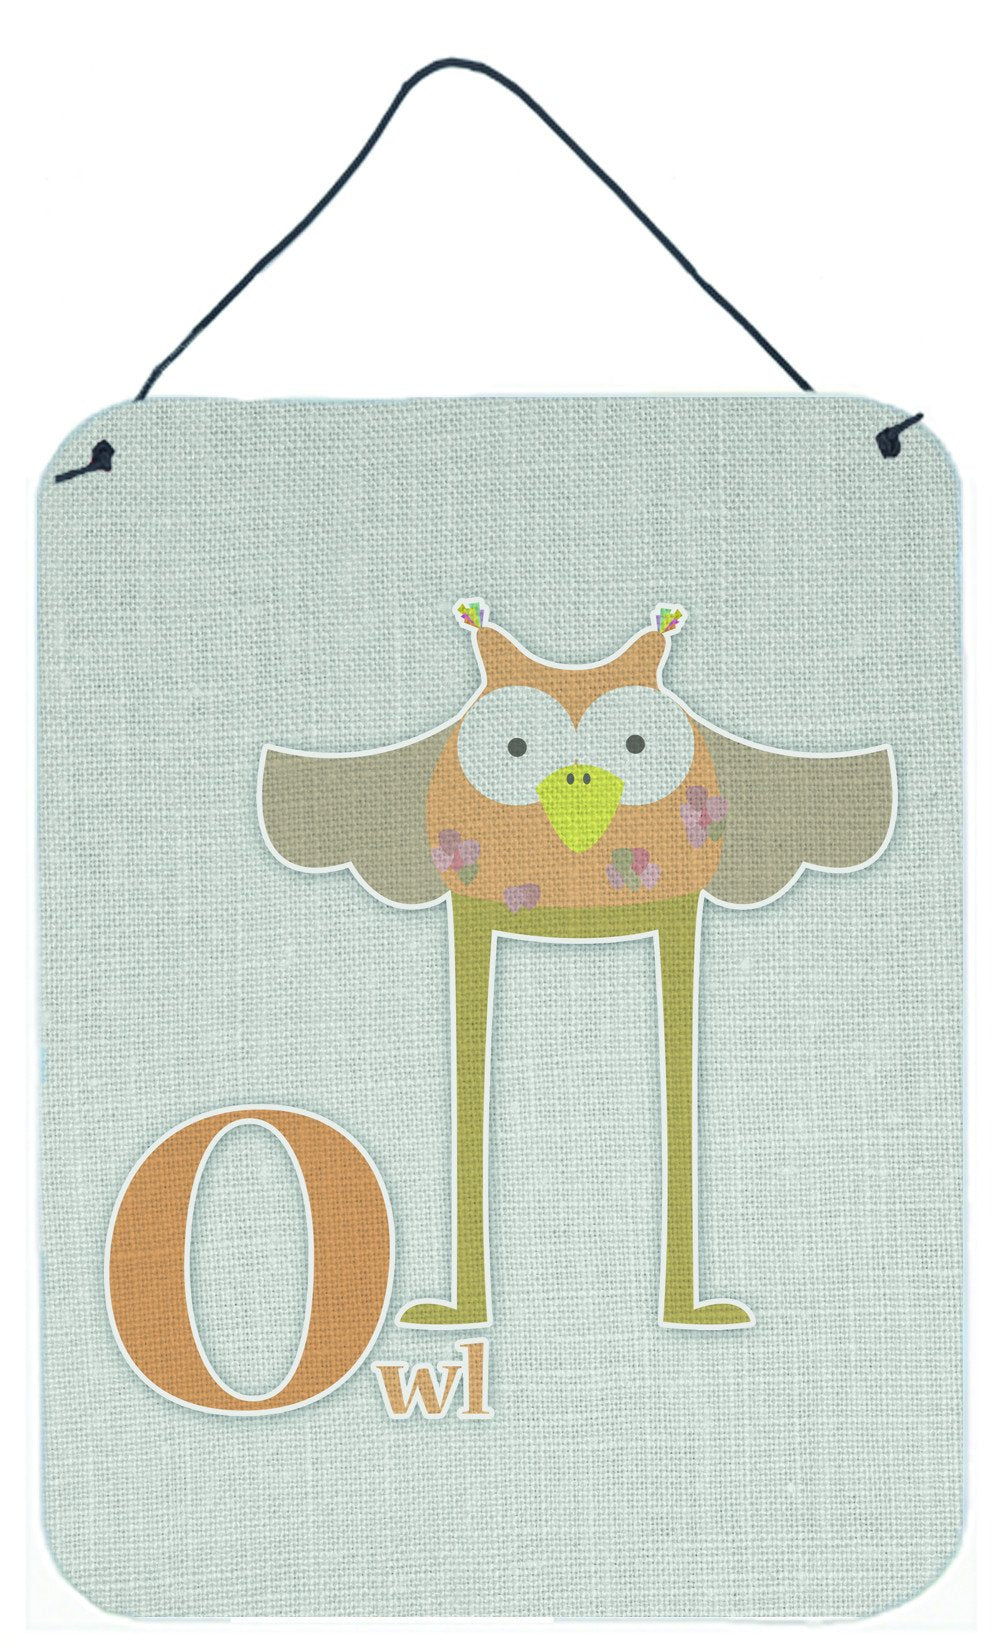 Alphabet O for Owl Wall or Door Hanging Prints BB5740DS1216 by Caroline's Treasures